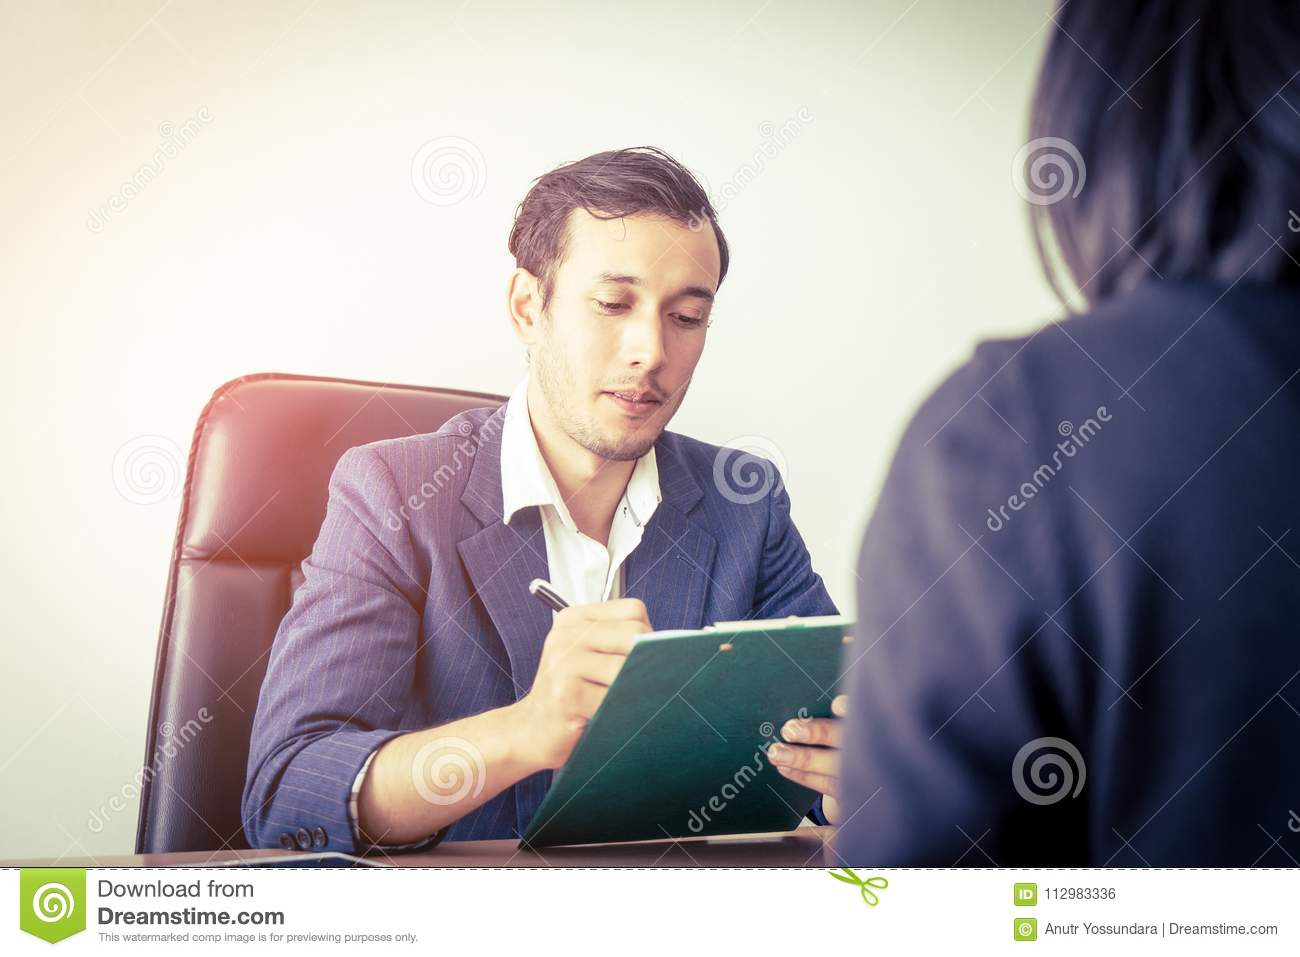 Executive taking note in business job interview